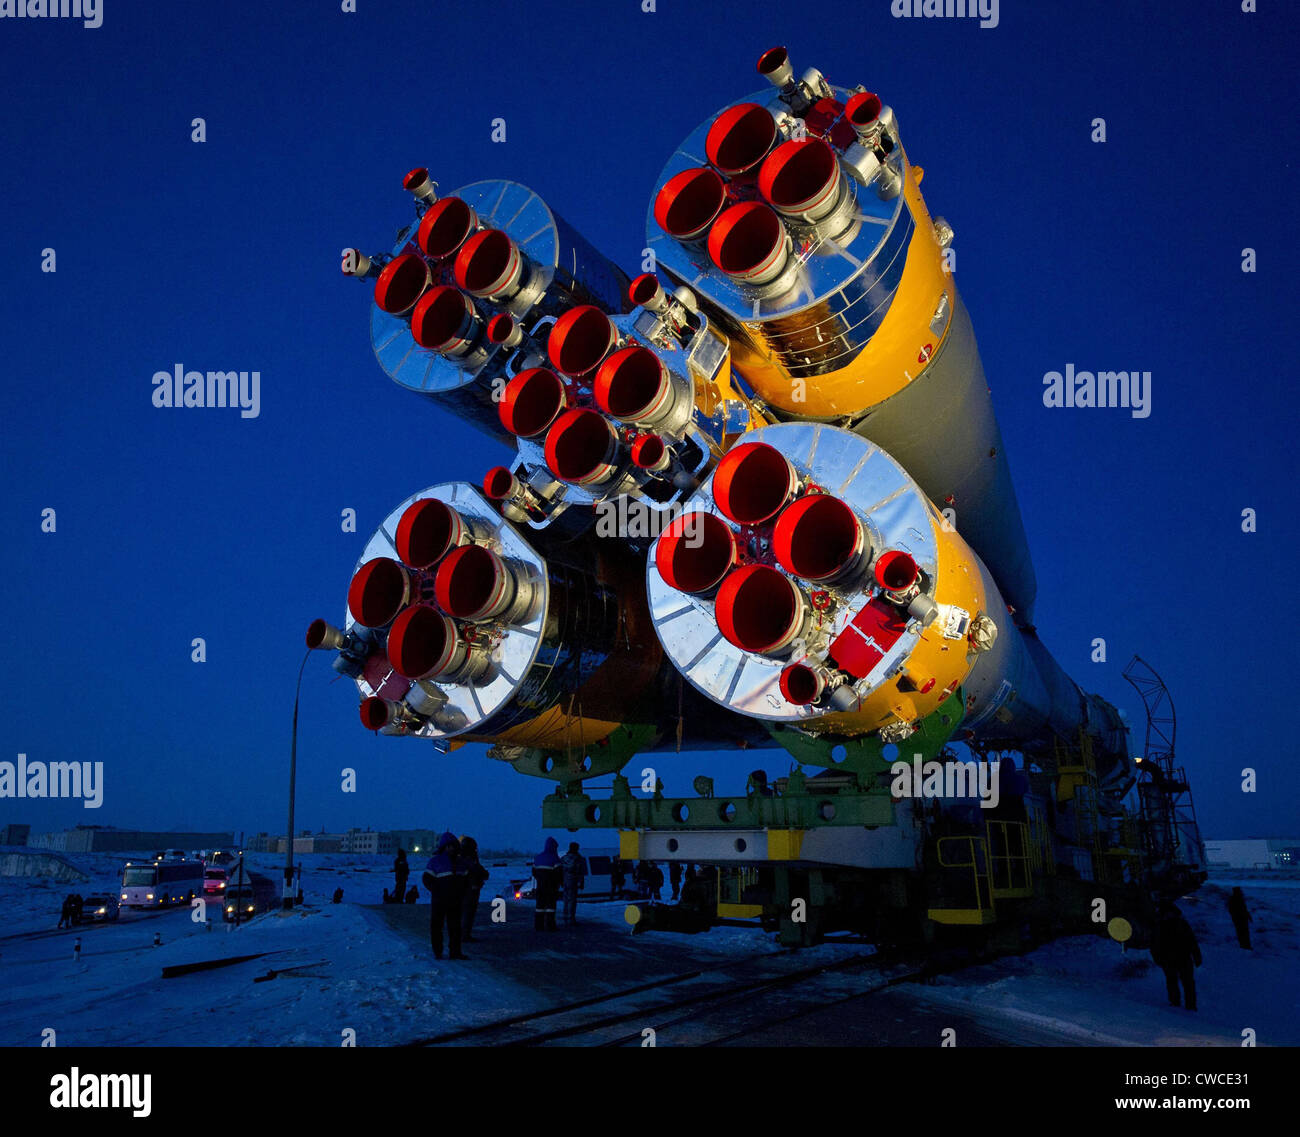 The Soyuz TMA-03M spacecraft to on its way to the launch pad at the Baikonur Cosmodrome, Kazakhstan. It carried - Stock Image